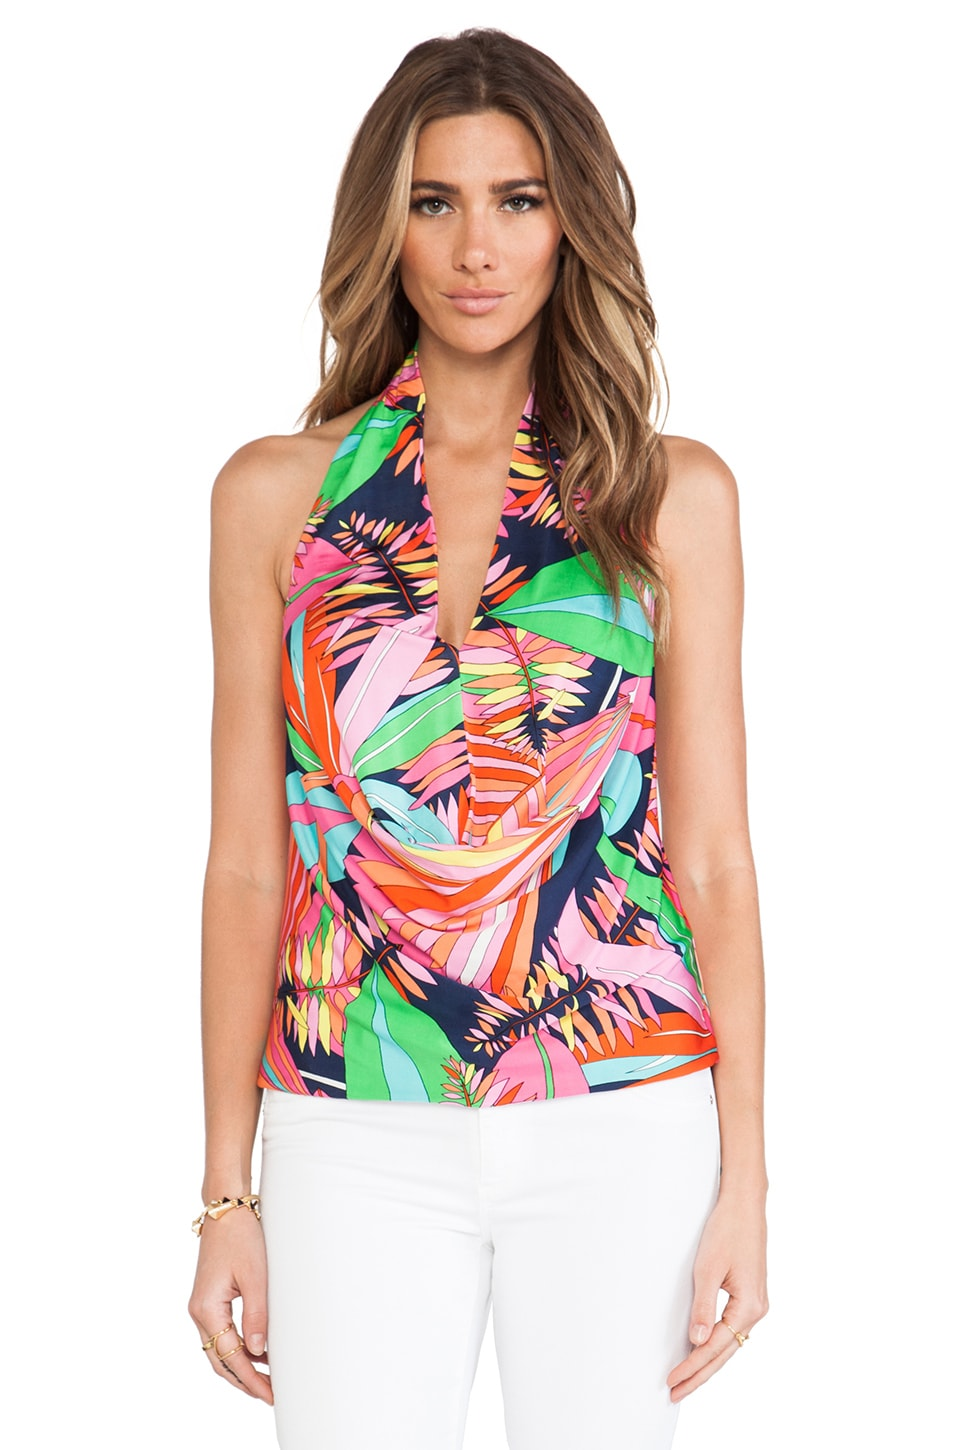 Trina Turk Biscayne Palm Lyrical Top in Multi